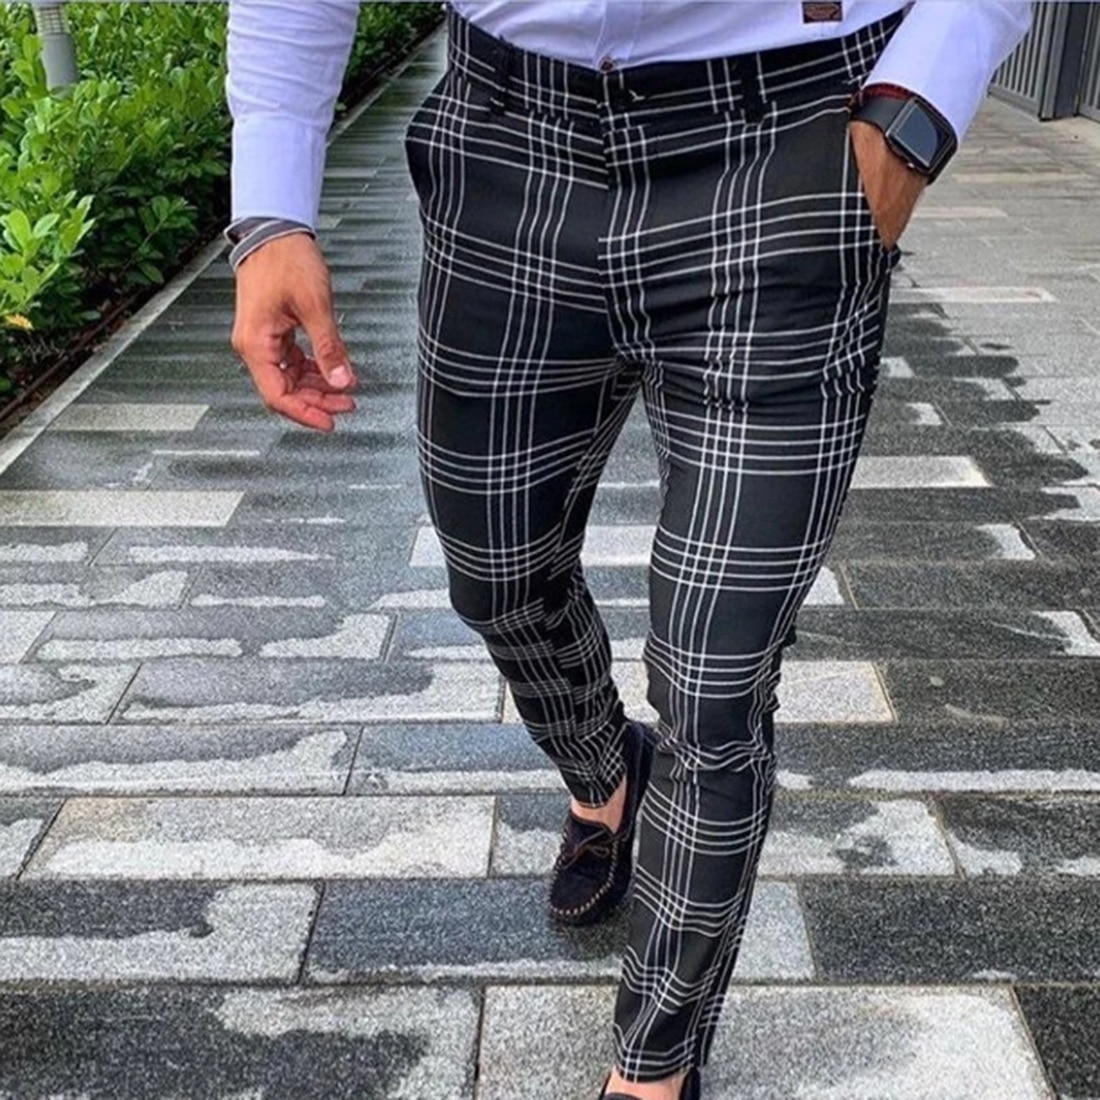 Men's Casual Pants Plaid Social Slim Fit Black Trousers Zipper Mid Waist Skinny Business Office Work Party Male Summer Stretchy